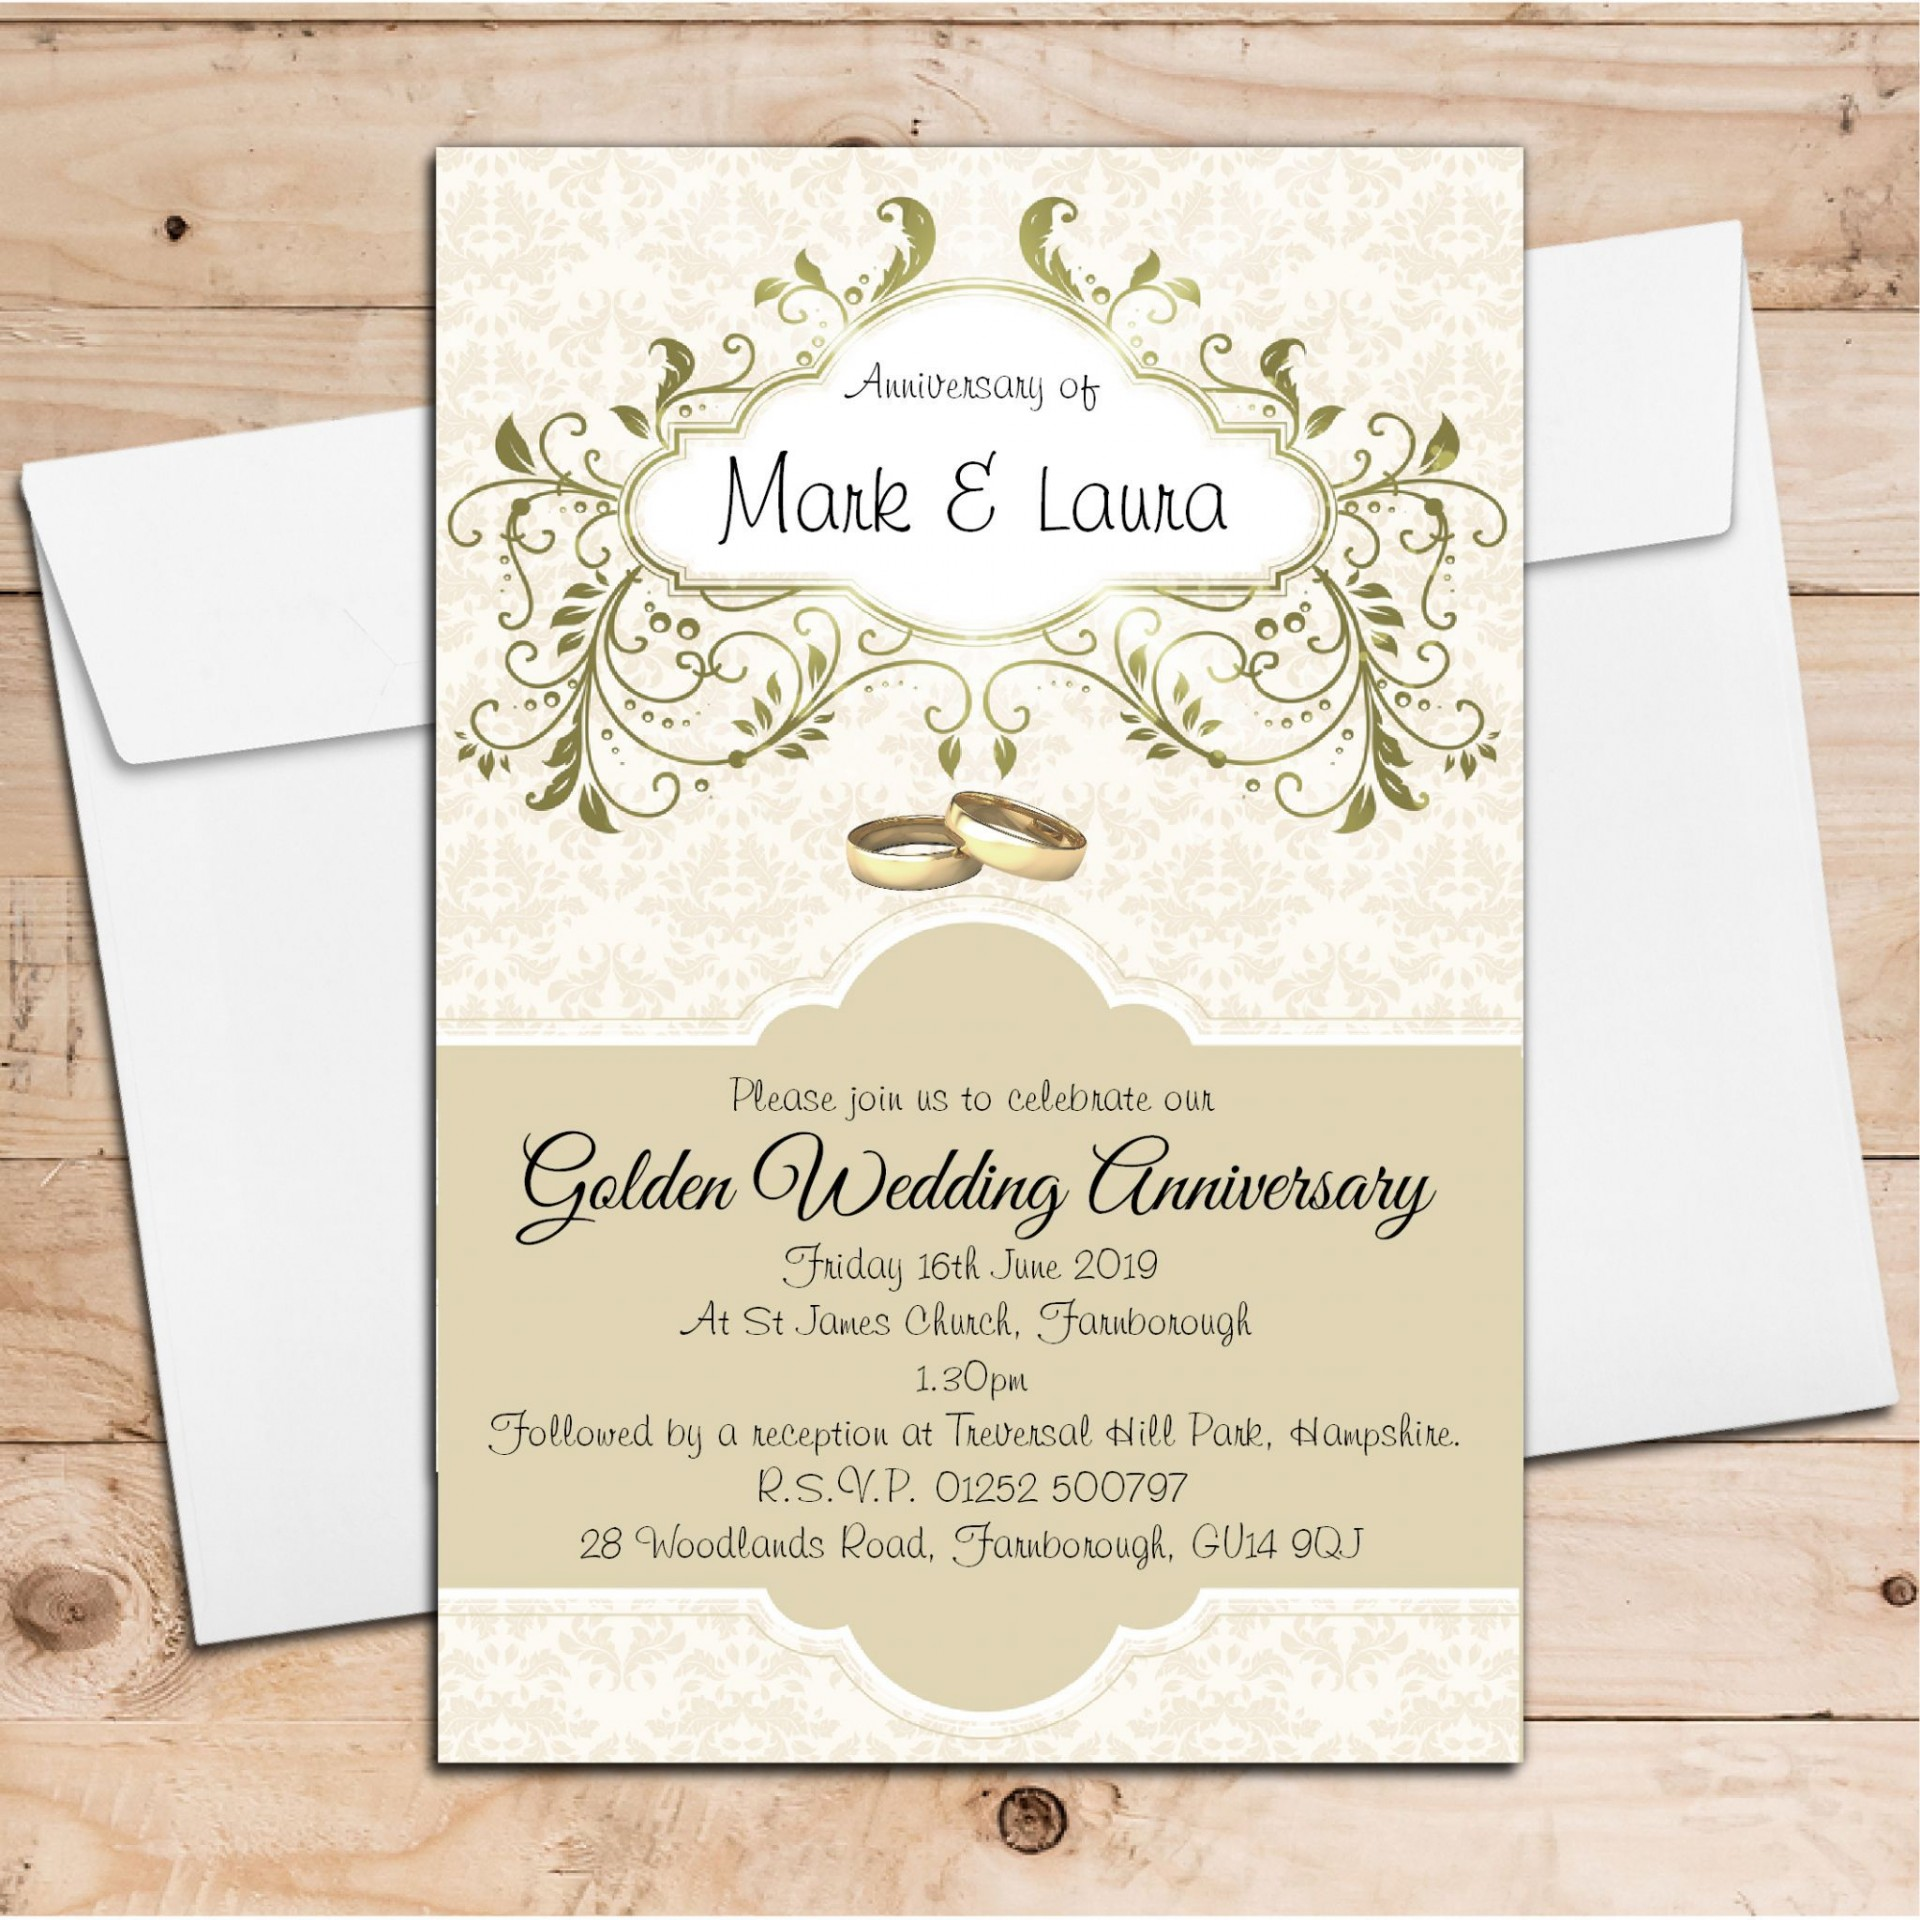 000 Incredible 50th Anniversary Invitation Design Highest Clarity  Designs Wedding Template Microsoft Word Surprise Party Wording Card Idea1920